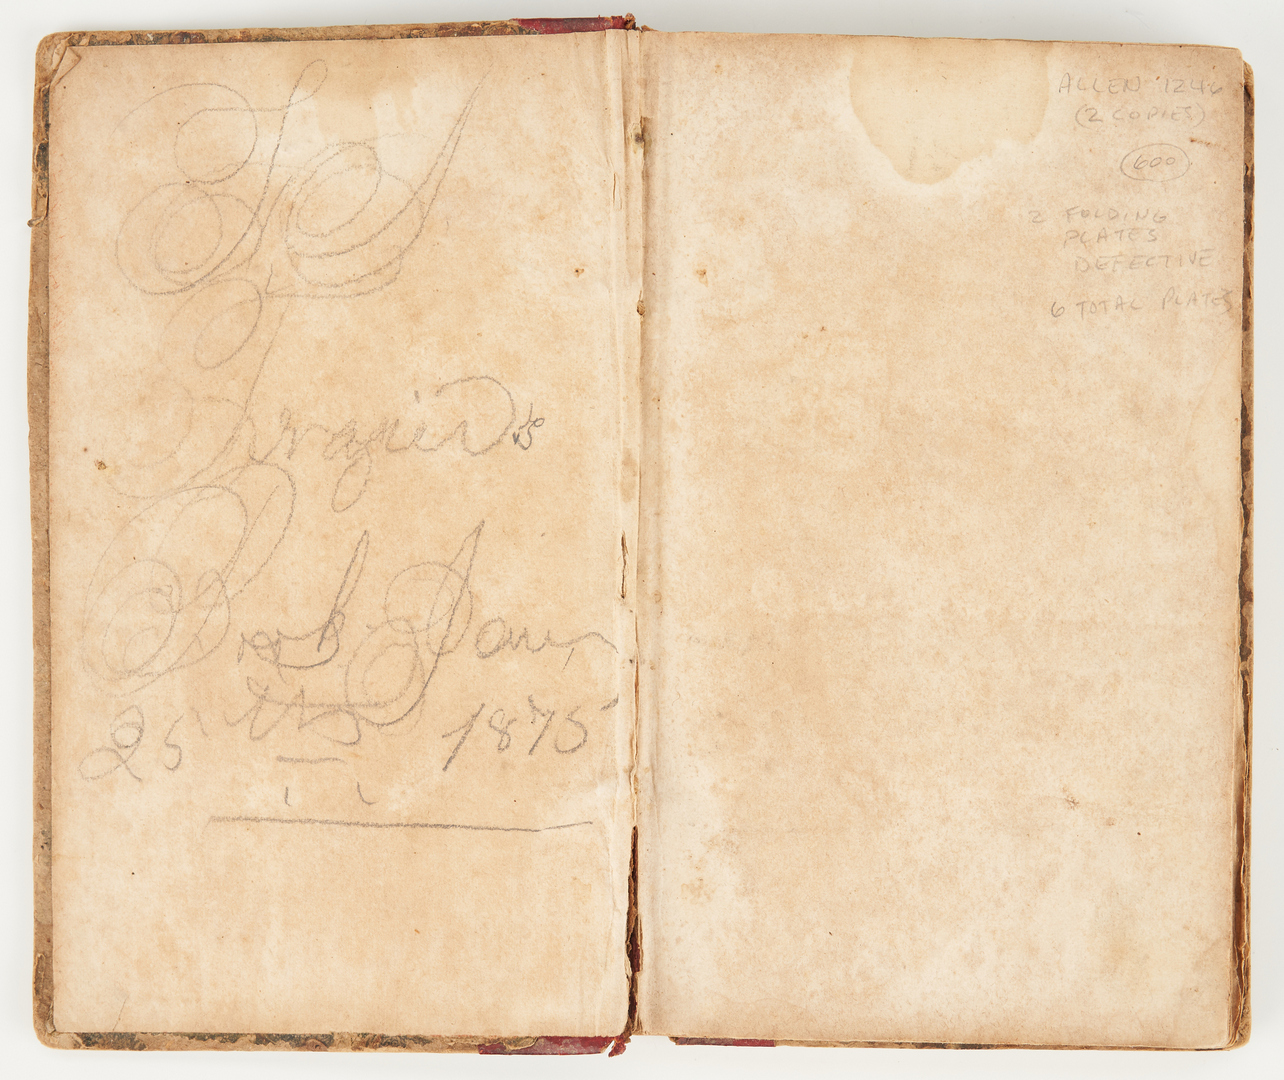 Lot 628: 2 TN Medical Related Books, incl. Simplified Anatomy